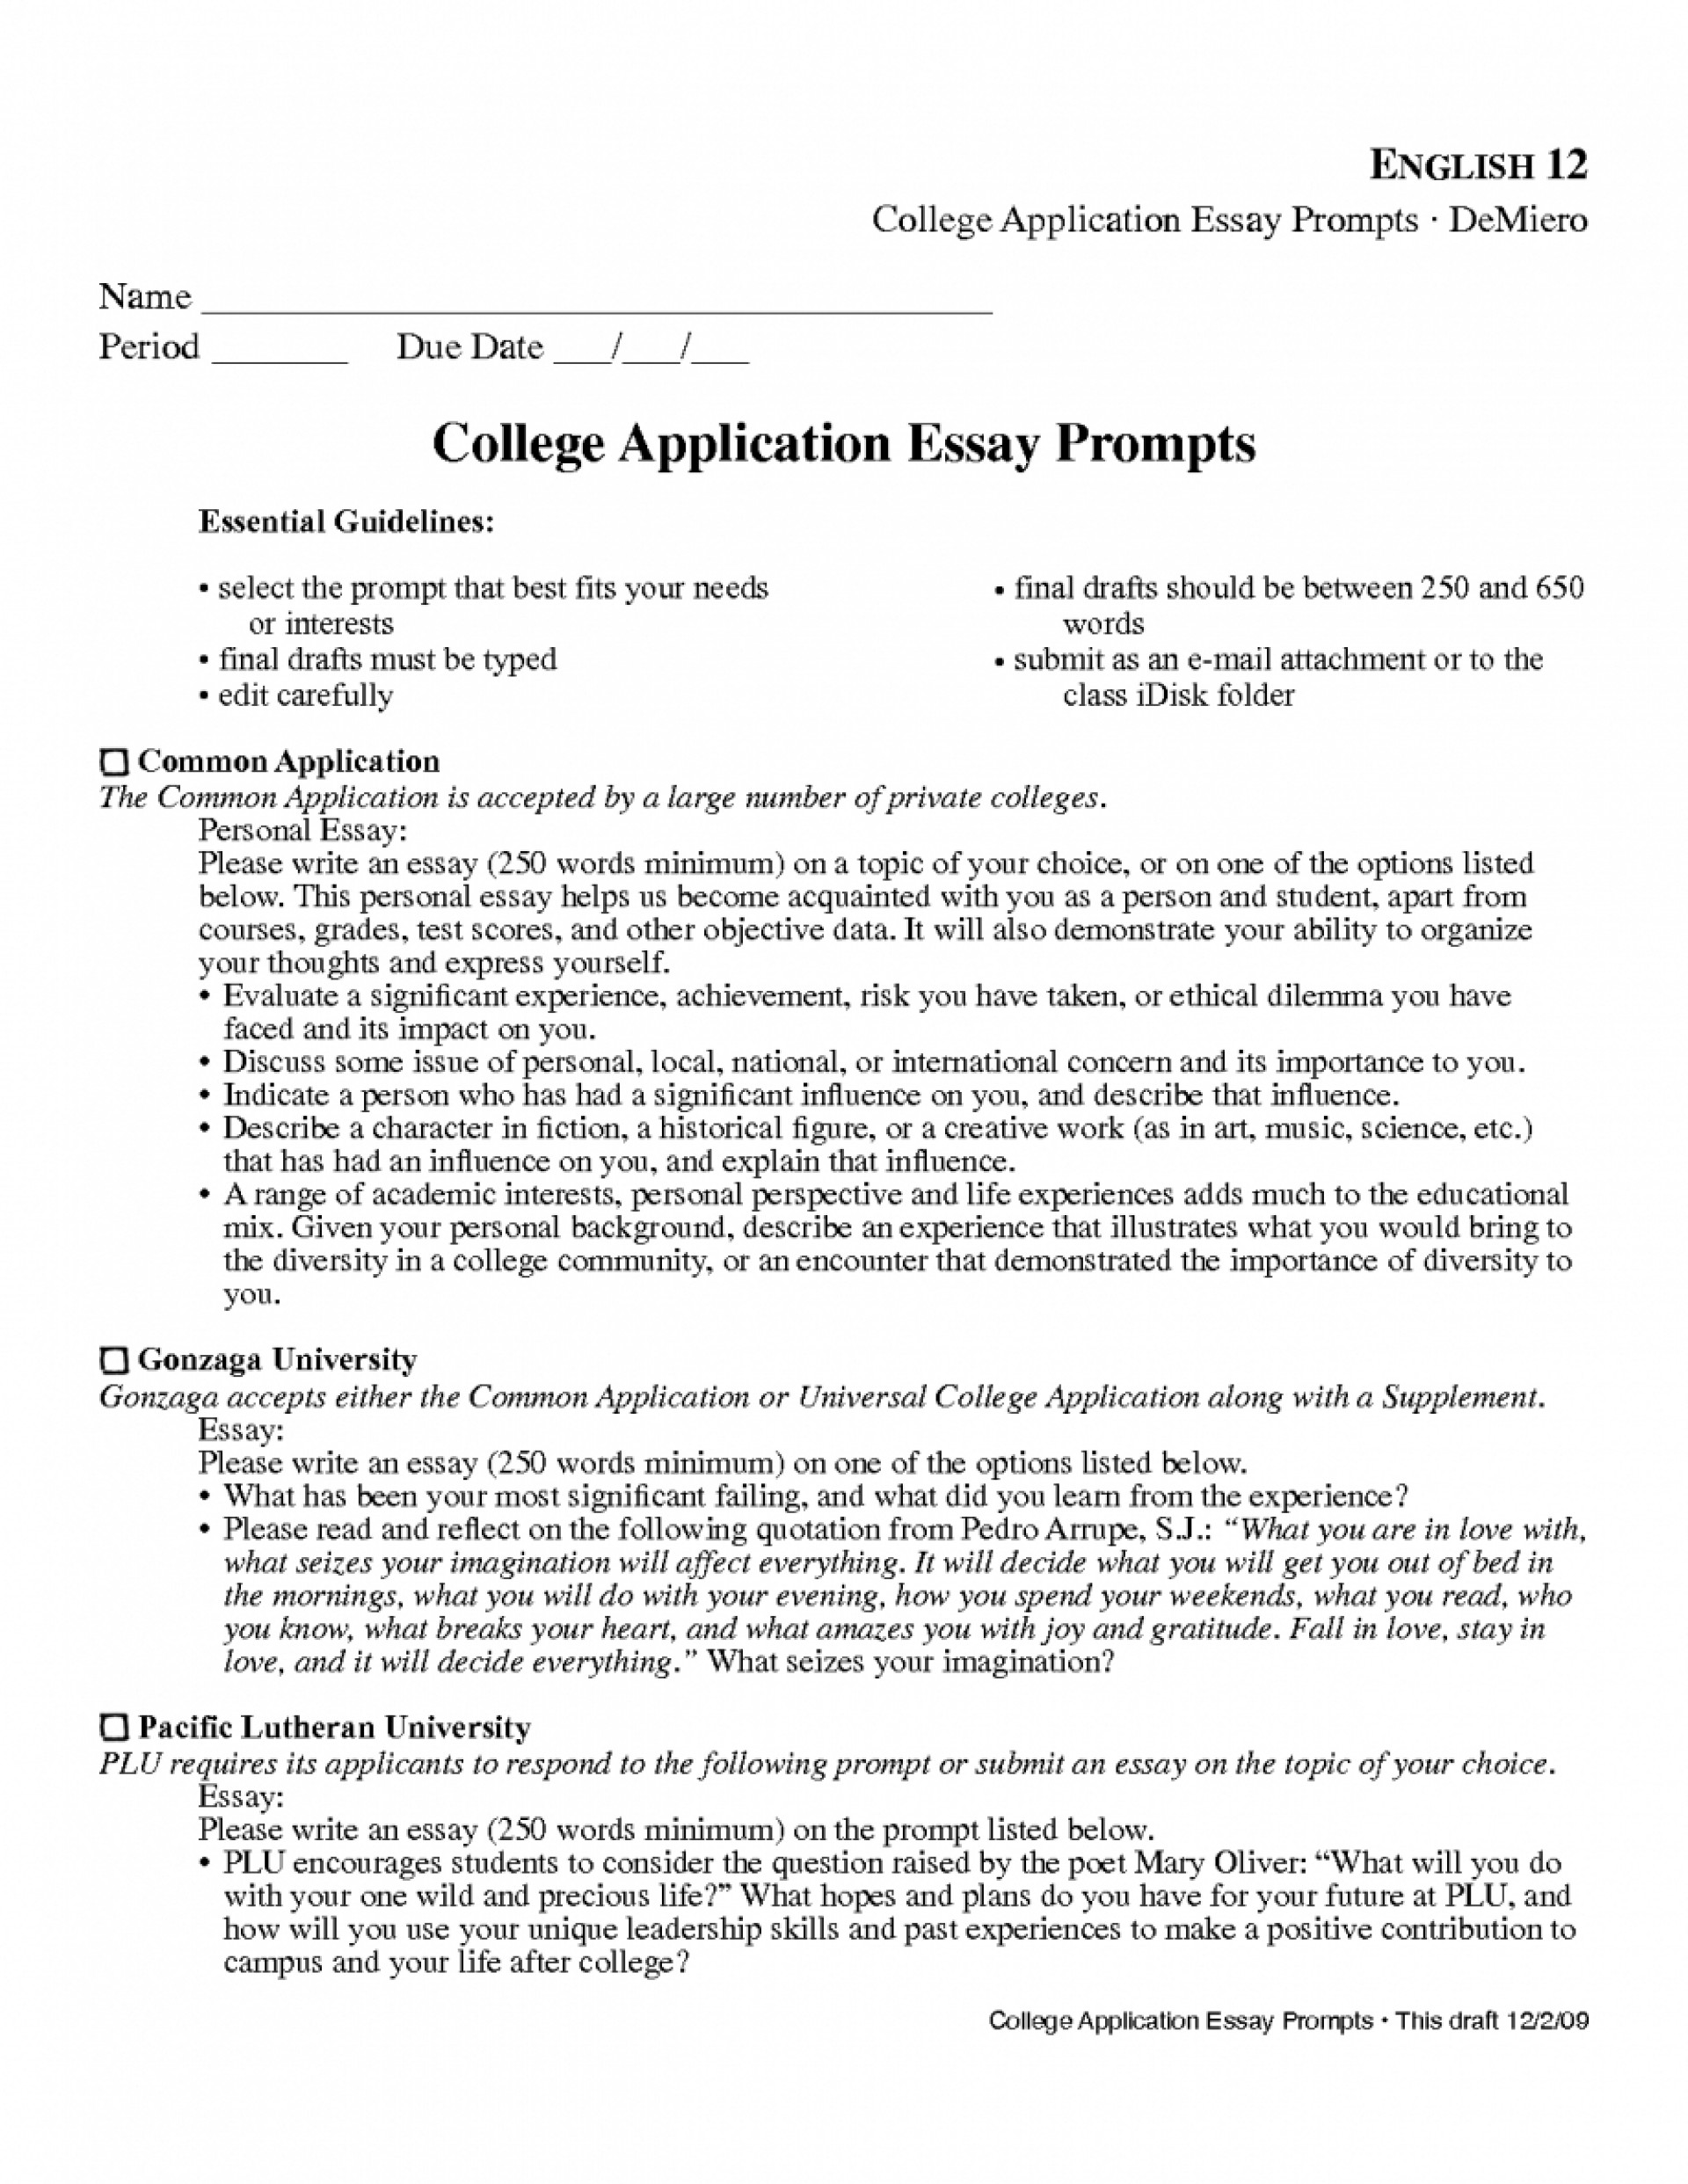 012 College Essays Writings And Examples Of Application Questions Guve Securid Co With Rega Sample Example Ucla Fascinating Essay Prompt Prompts 2018-19 2017 1920